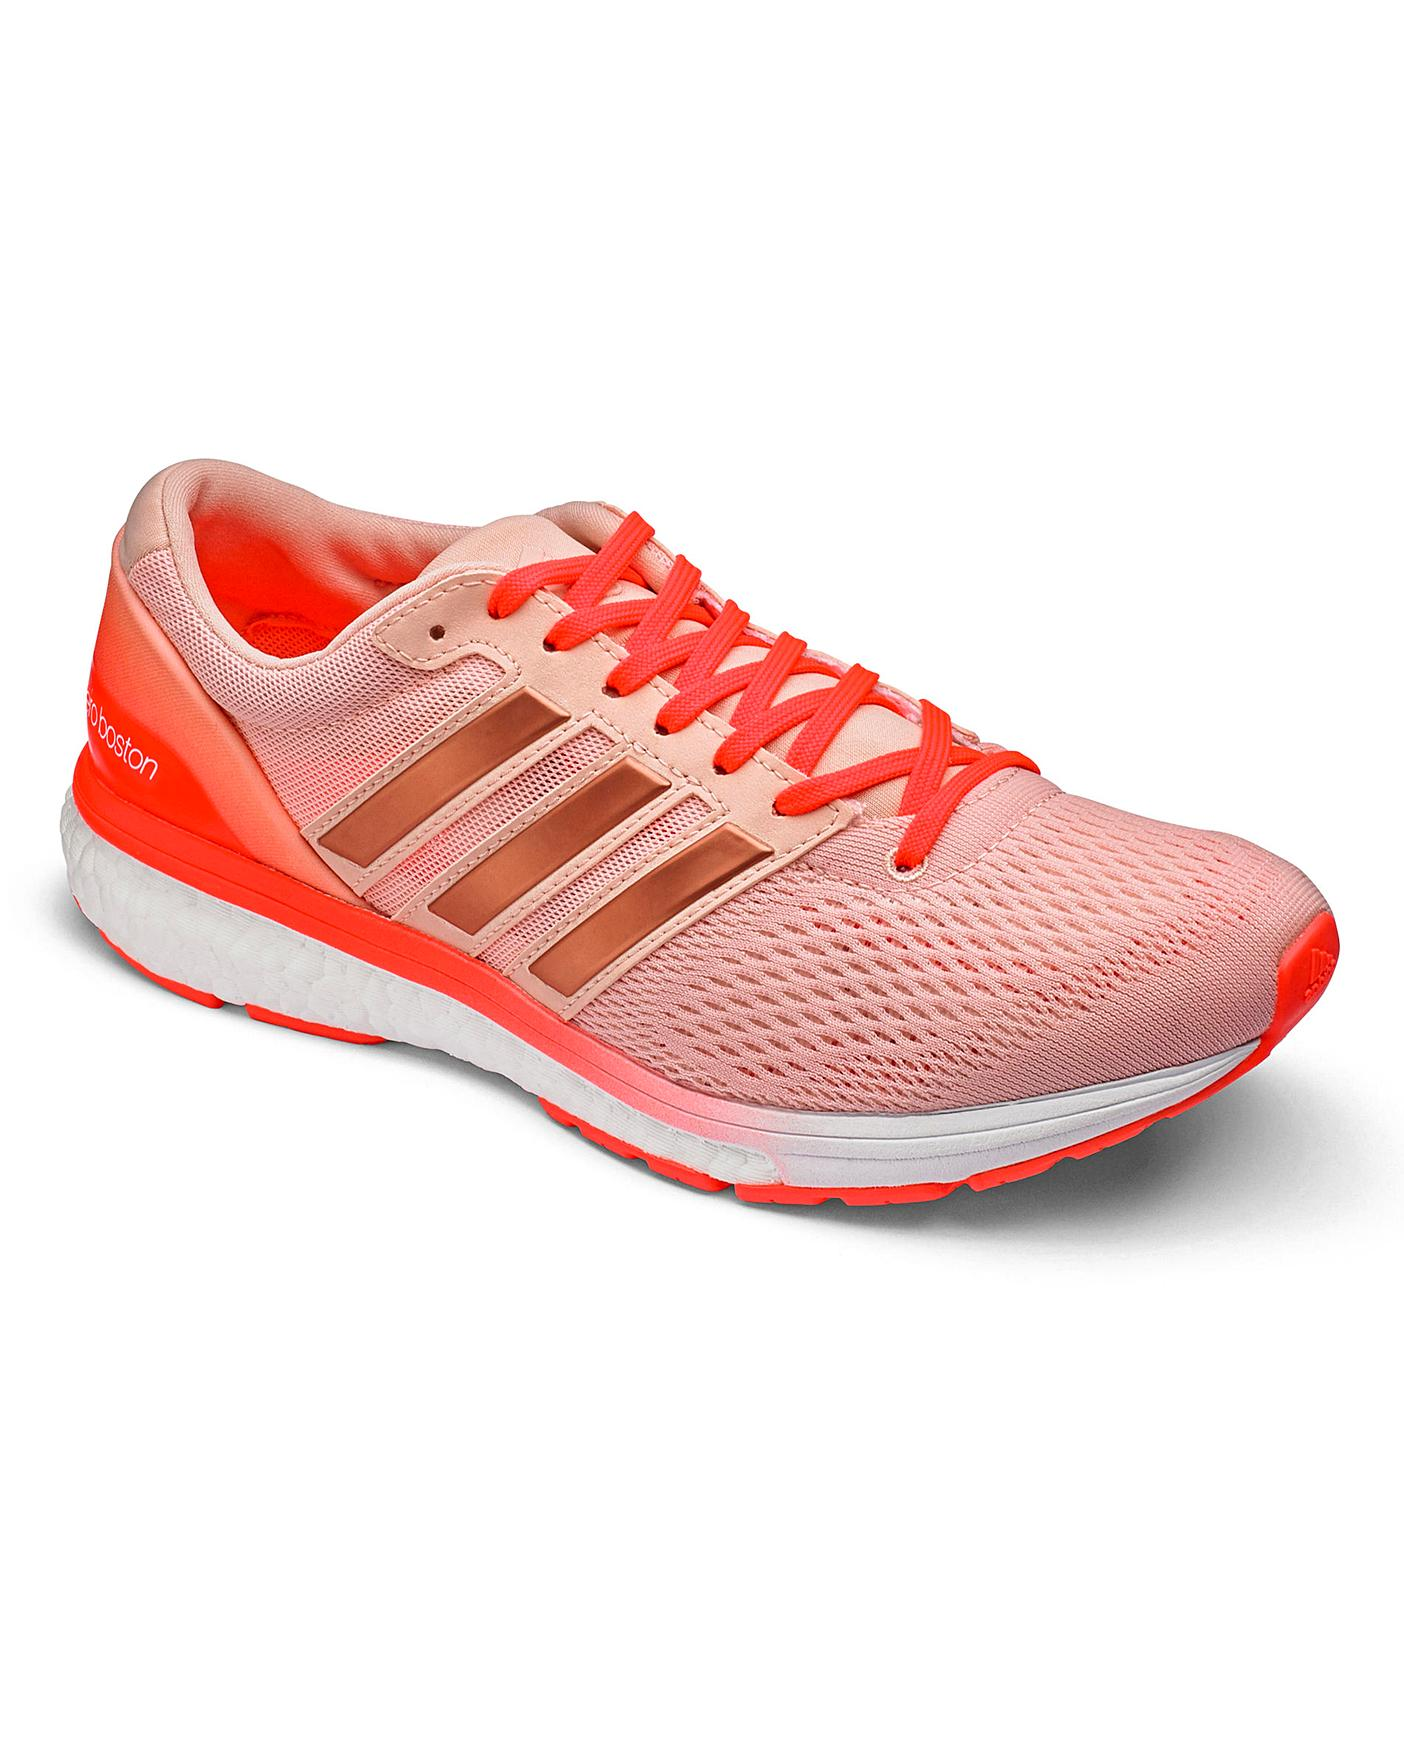 f49f1be9351 Adidas adizero boston 6 Womens Trainers